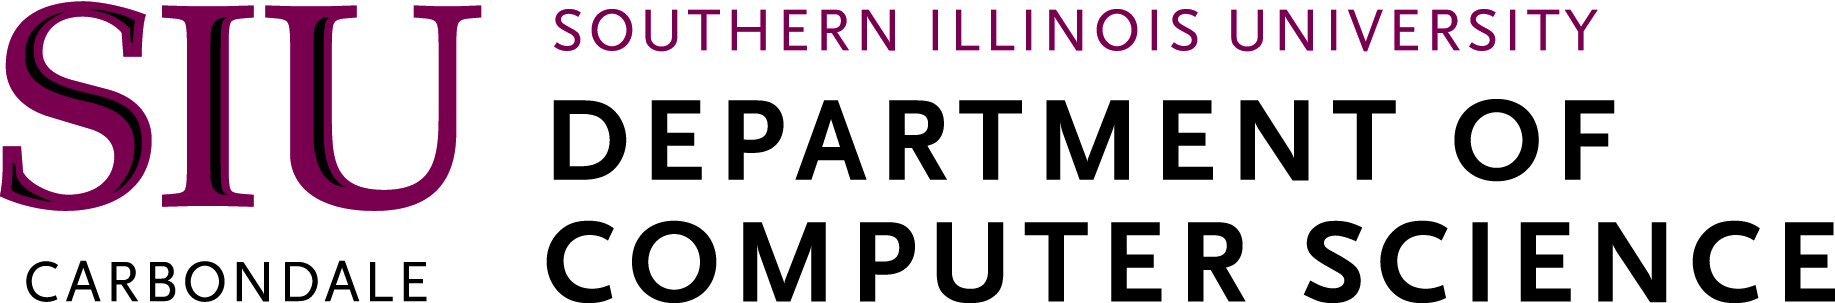 Department of Computer Science, Southern Illinois University